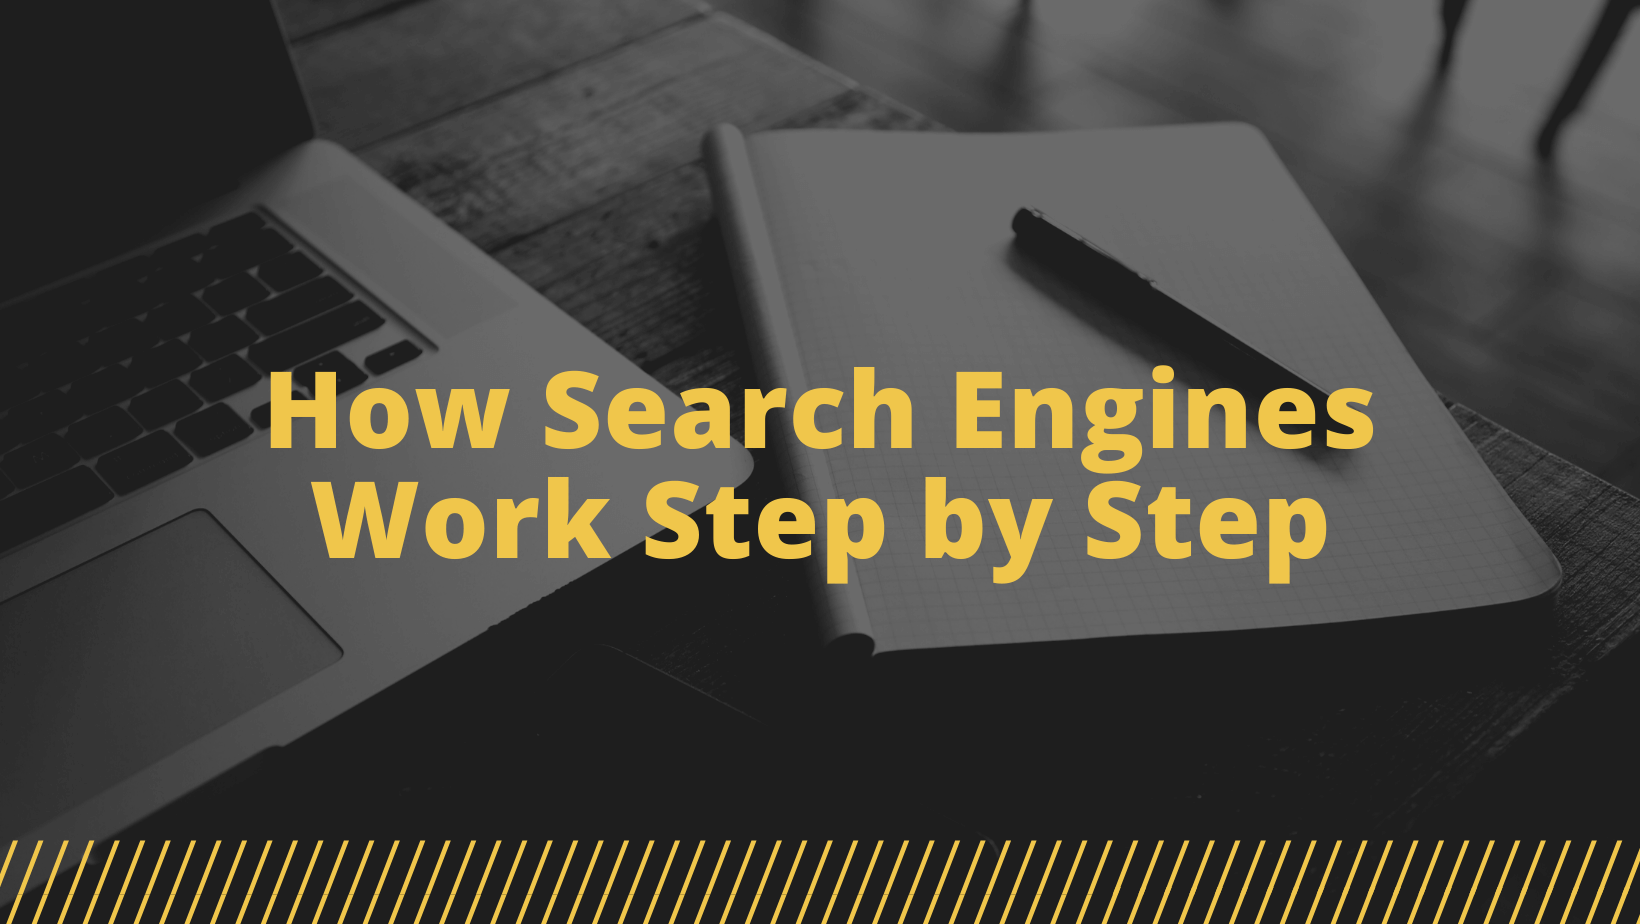 how search engines work step by step